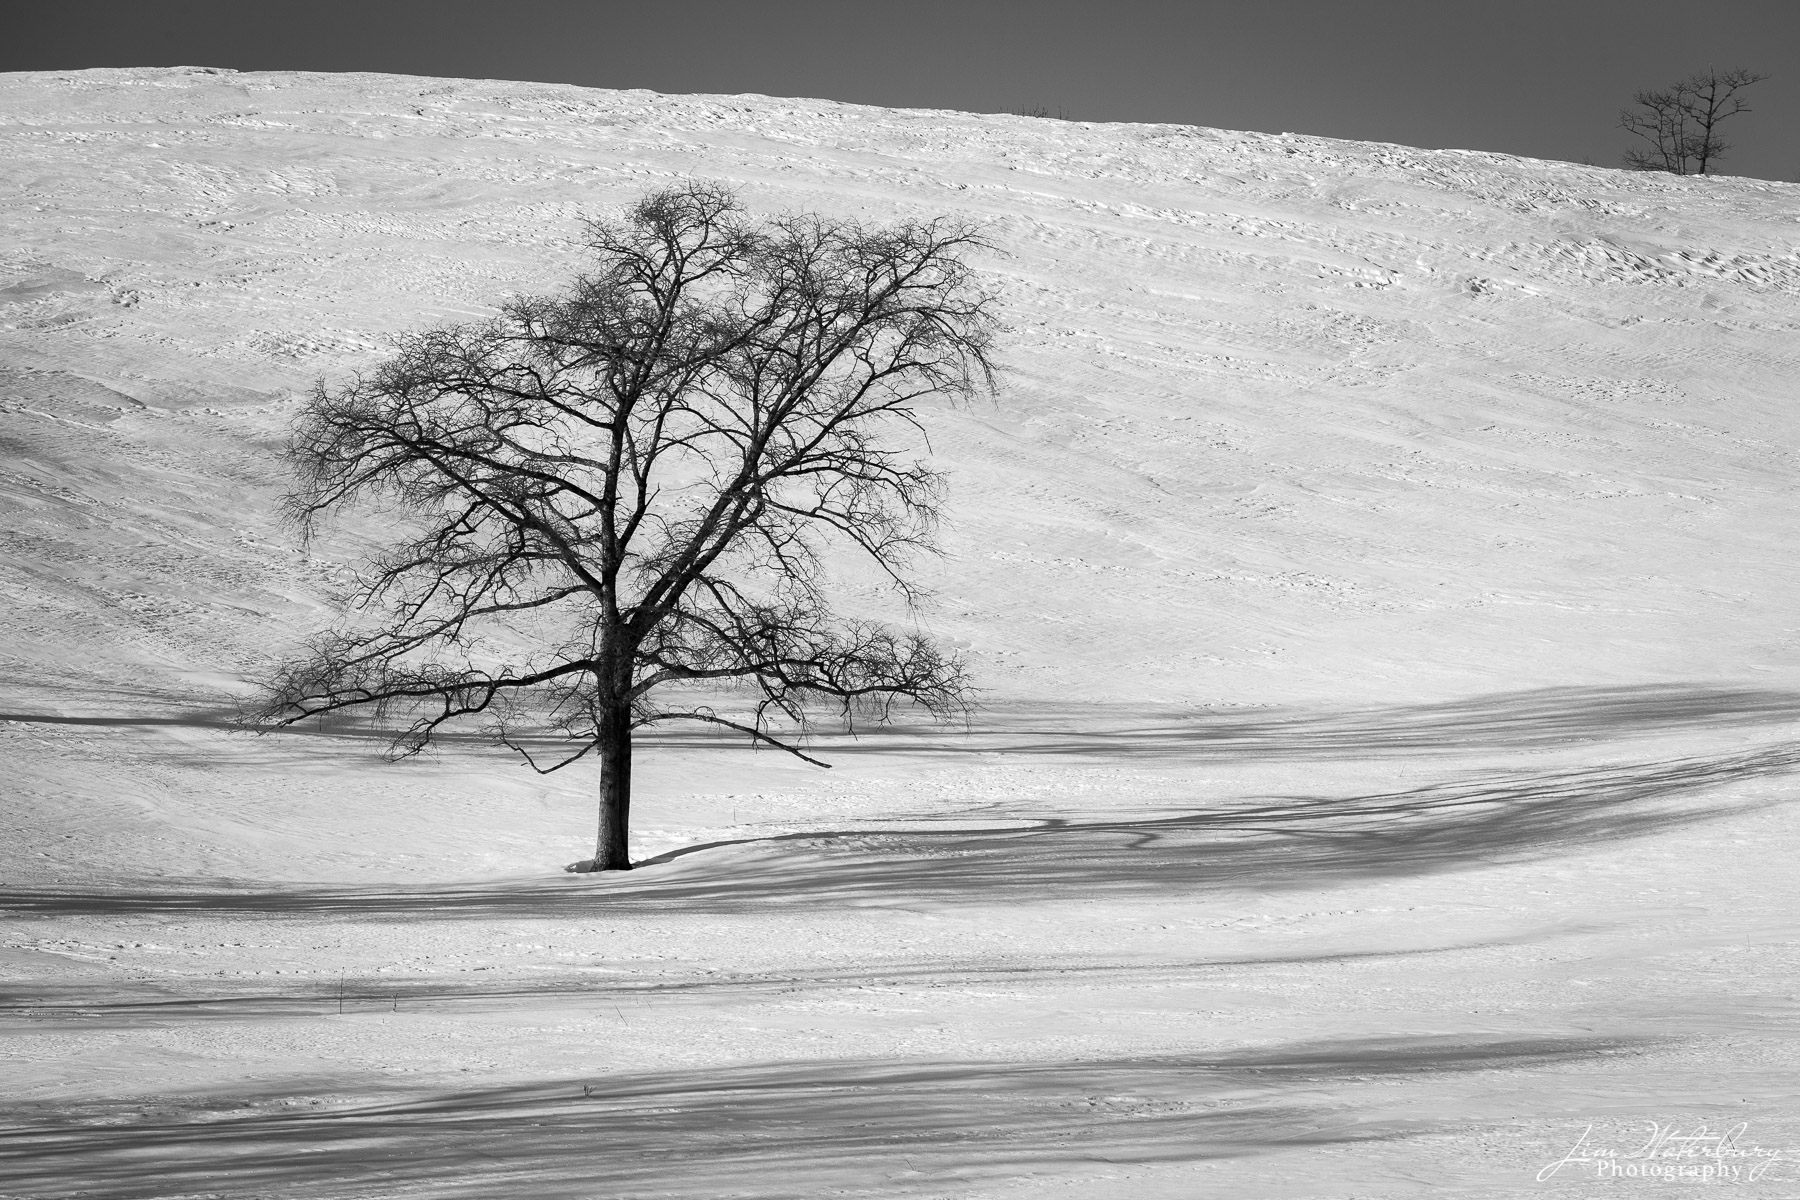 A black & white image of a lone tree posed in the snow-covered hills of Hokkaido, Japan, casting shadows on the newly fallen...